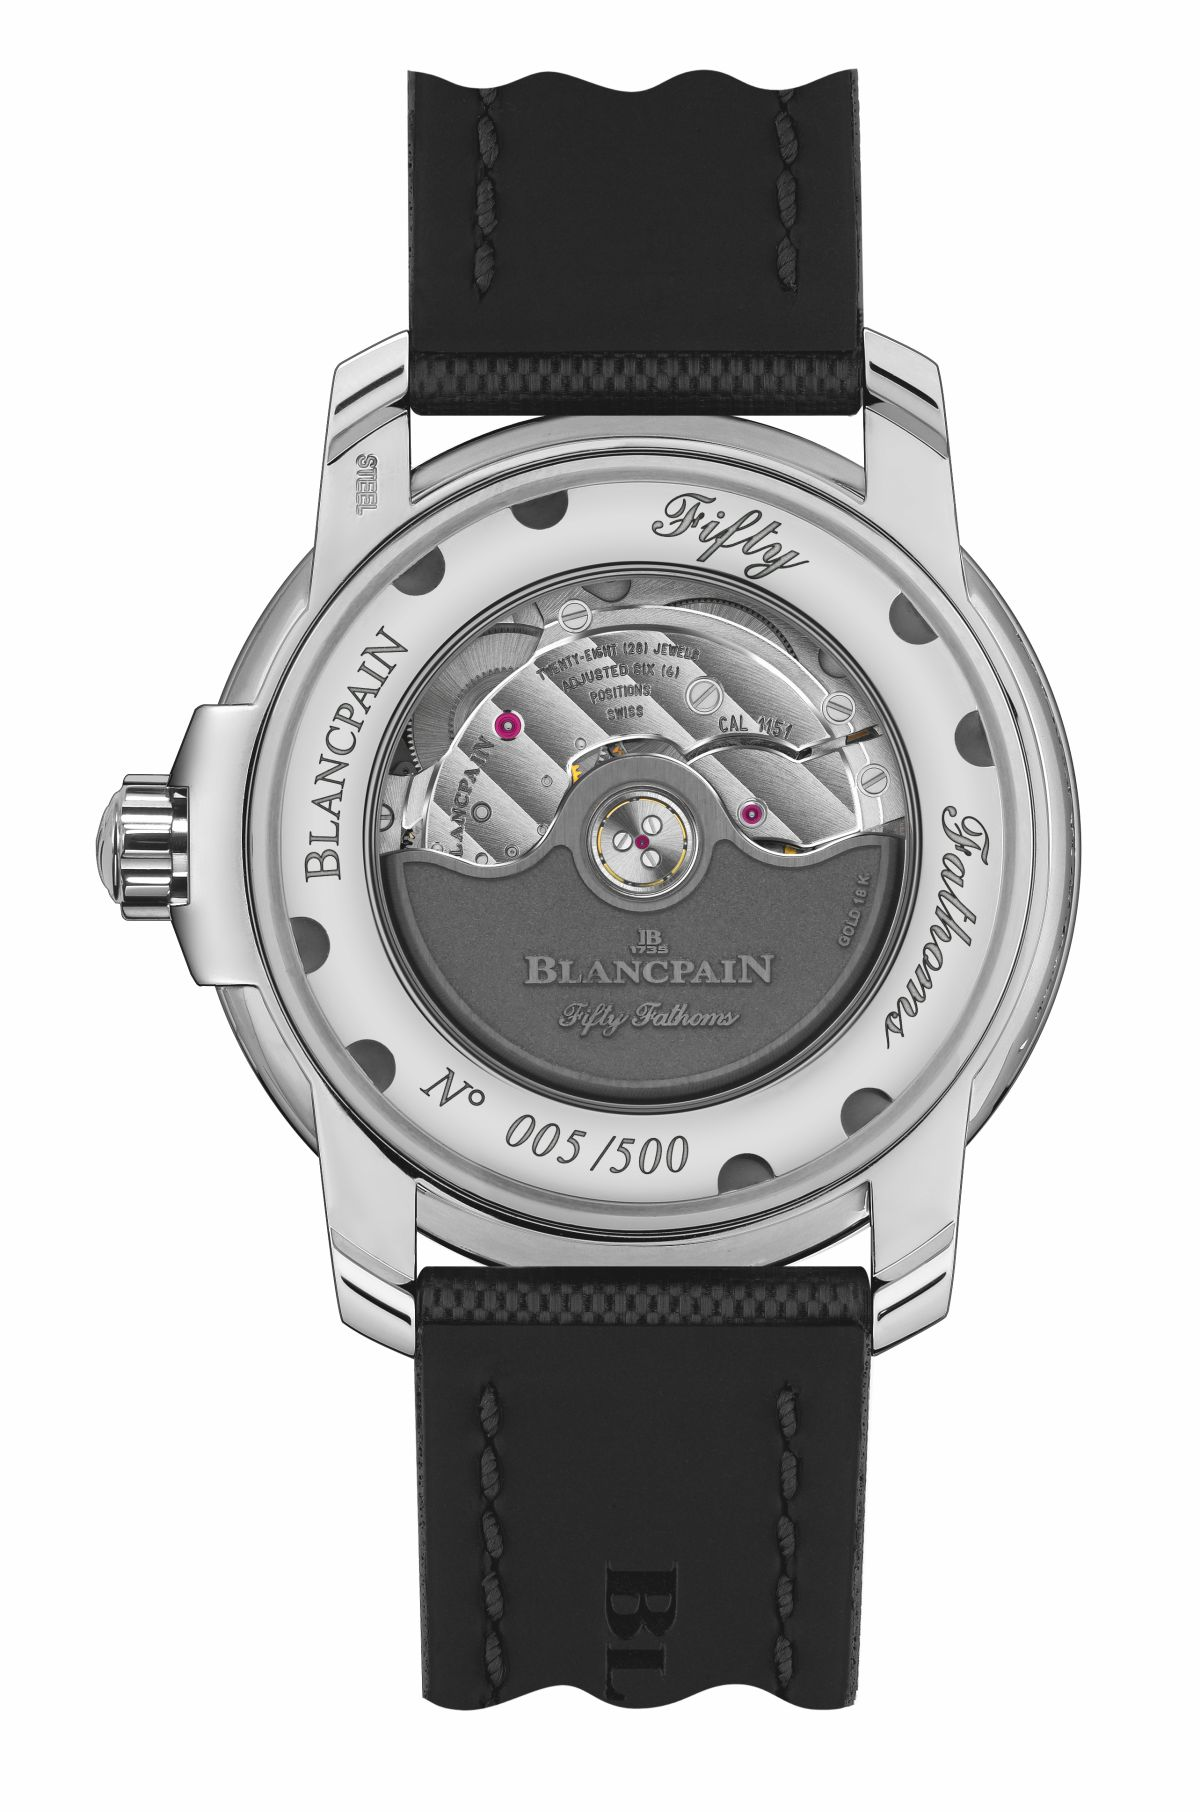 Blancpain-Fifty-Fathoms-Mil-Spec-1.jpg